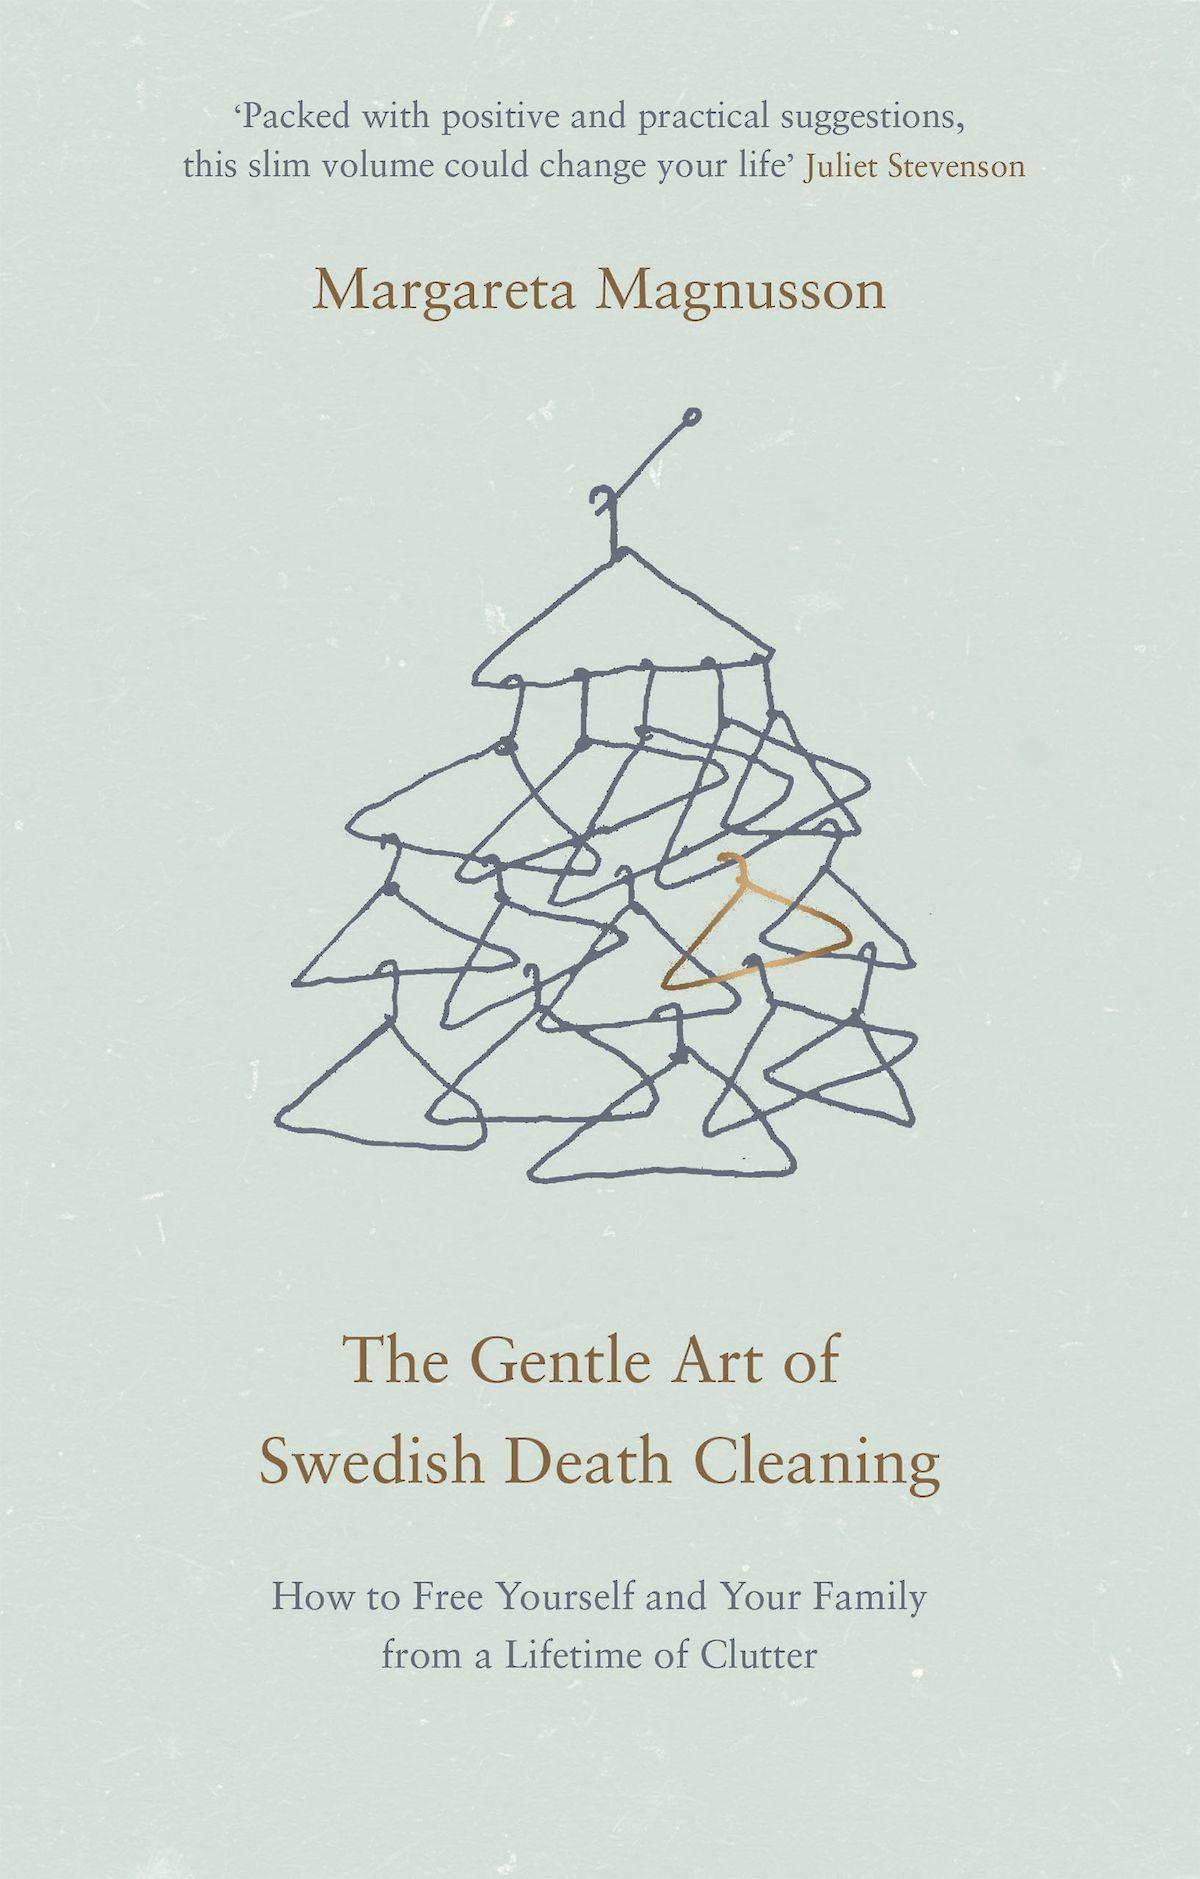 Image of Margareta Magnusson – The Gentle Art of Swedish Death Cleaning